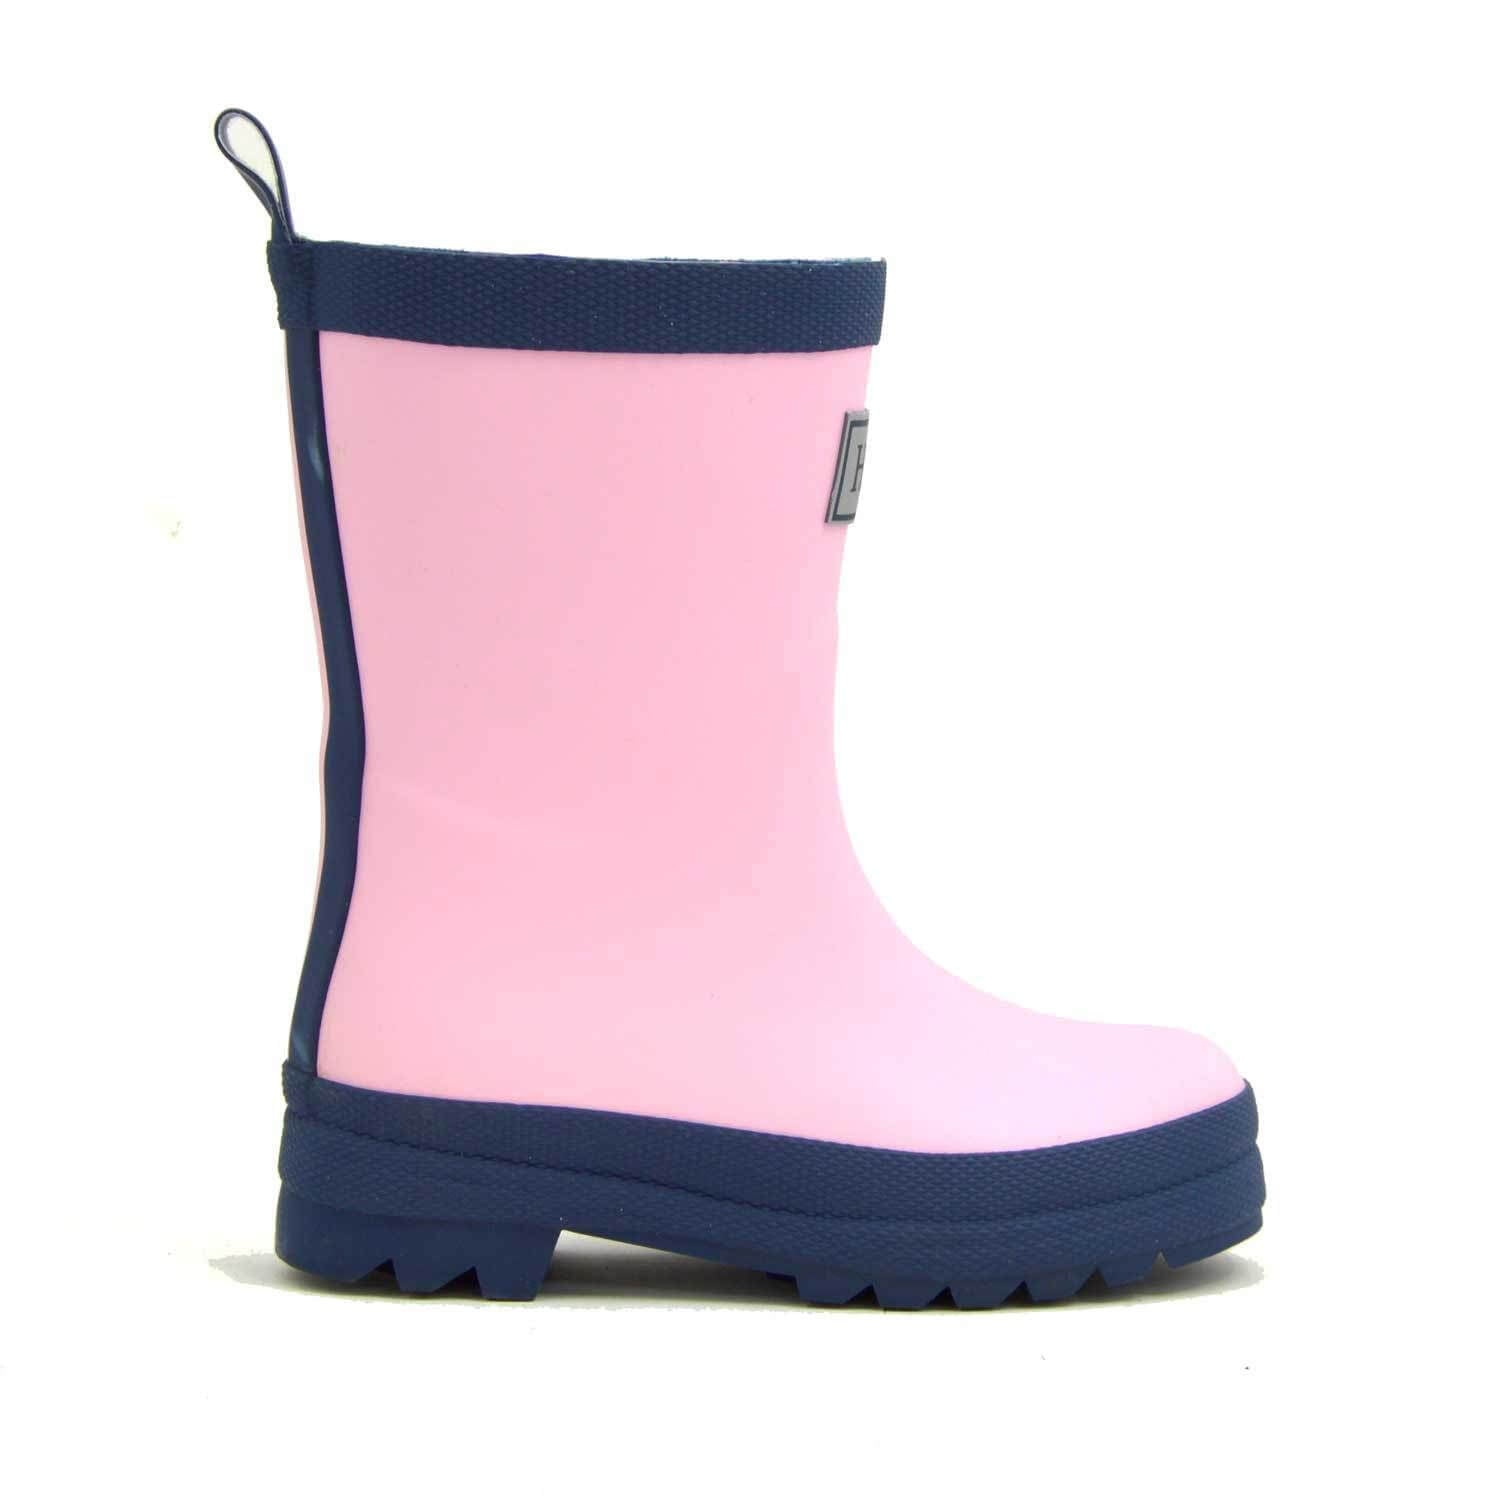 Pink and navy hatley rain boots - The Mango Tree